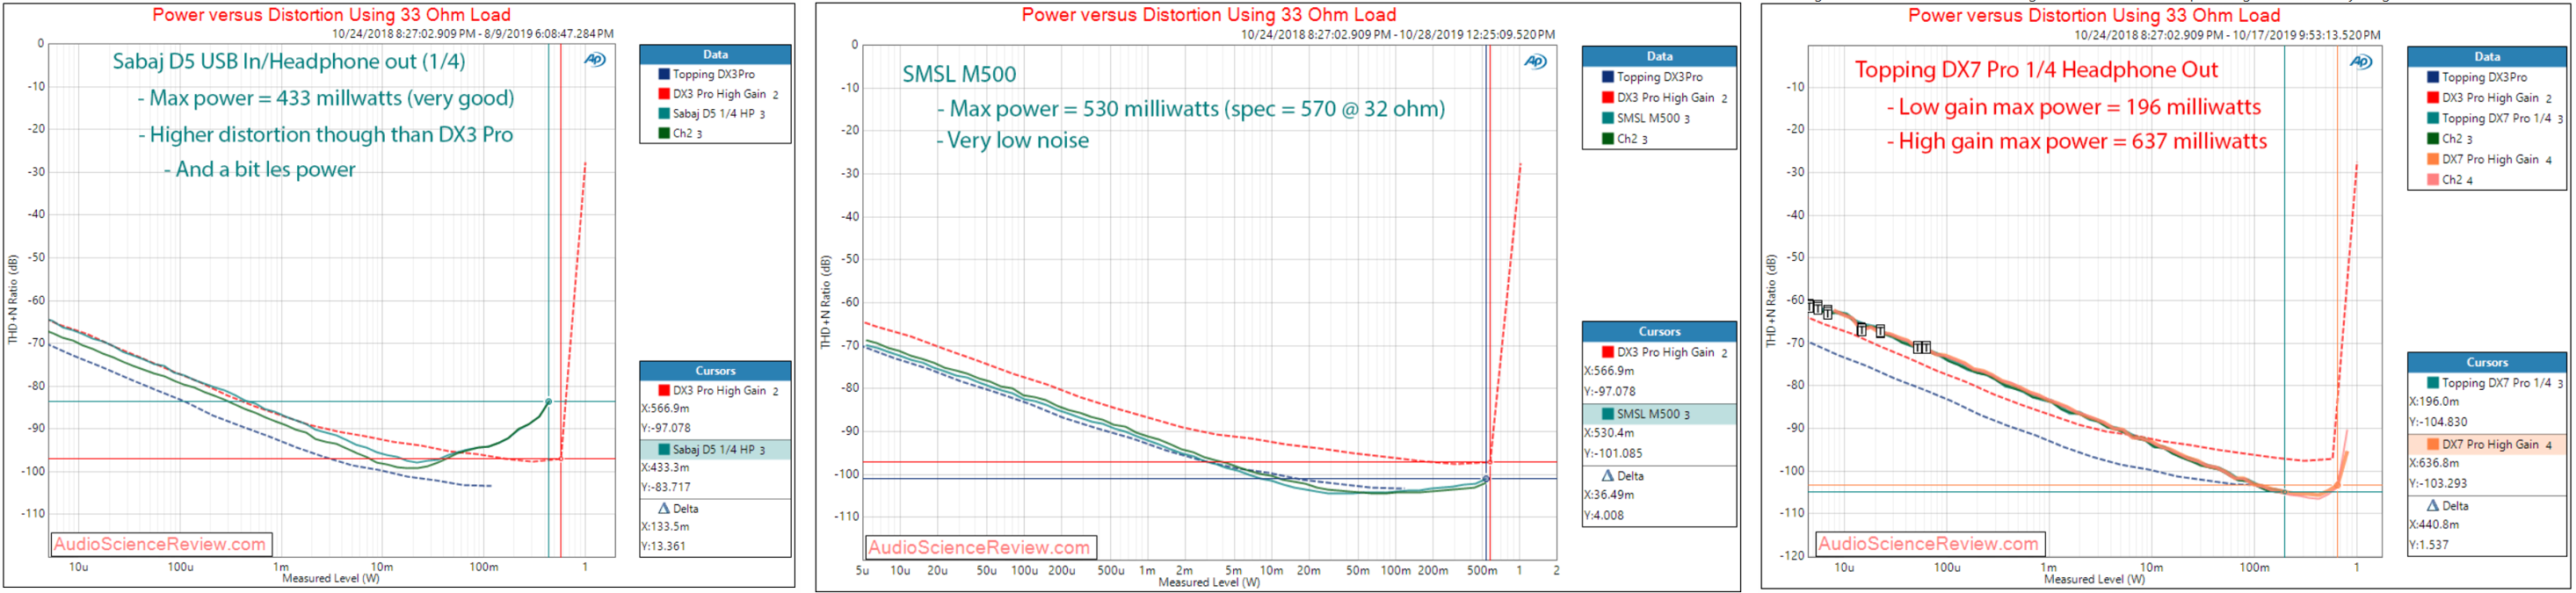 15.power_vs_distortion_33ohm.png